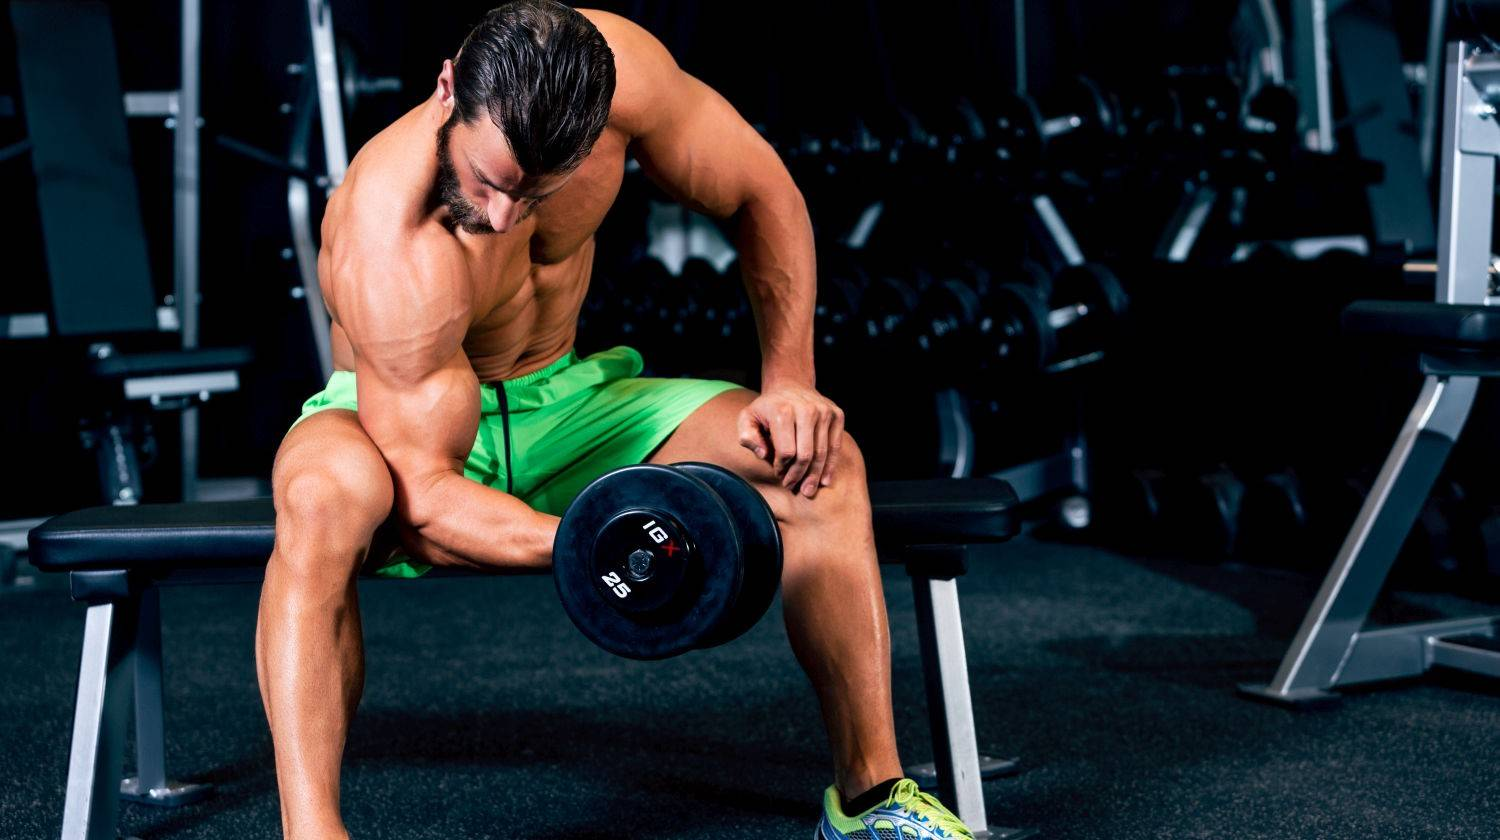 Get The Preferred Support For Bodybuilding Without More Complications